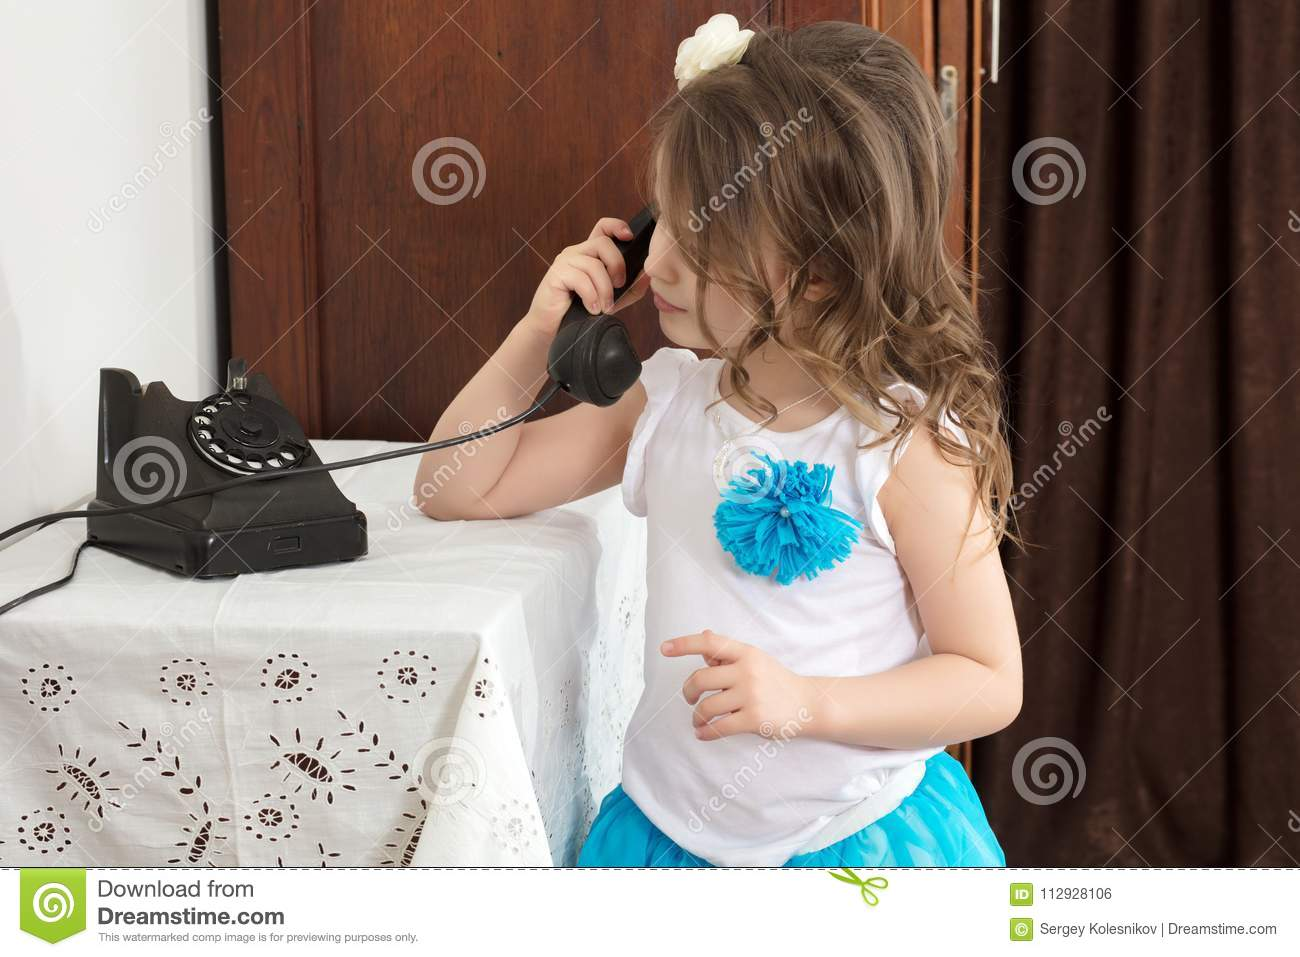 The Girls Ringing On The Old Phone  Stock Photo - Image of